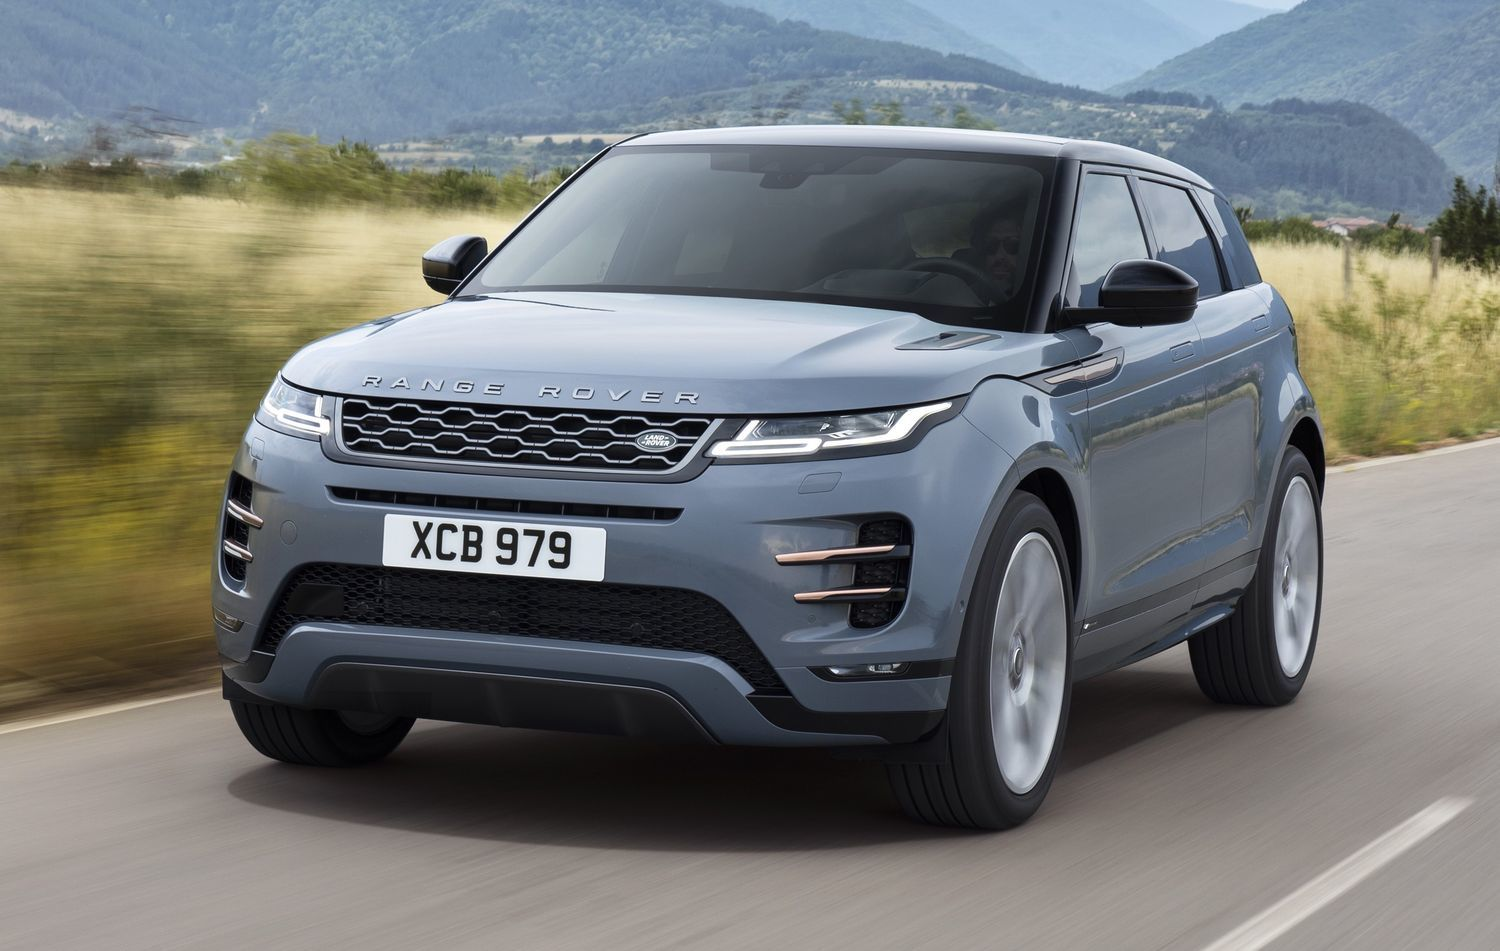 pr sentation vid o nouveau range rover evoque baby velar avec prix. Black Bedroom Furniture Sets. Home Design Ideas